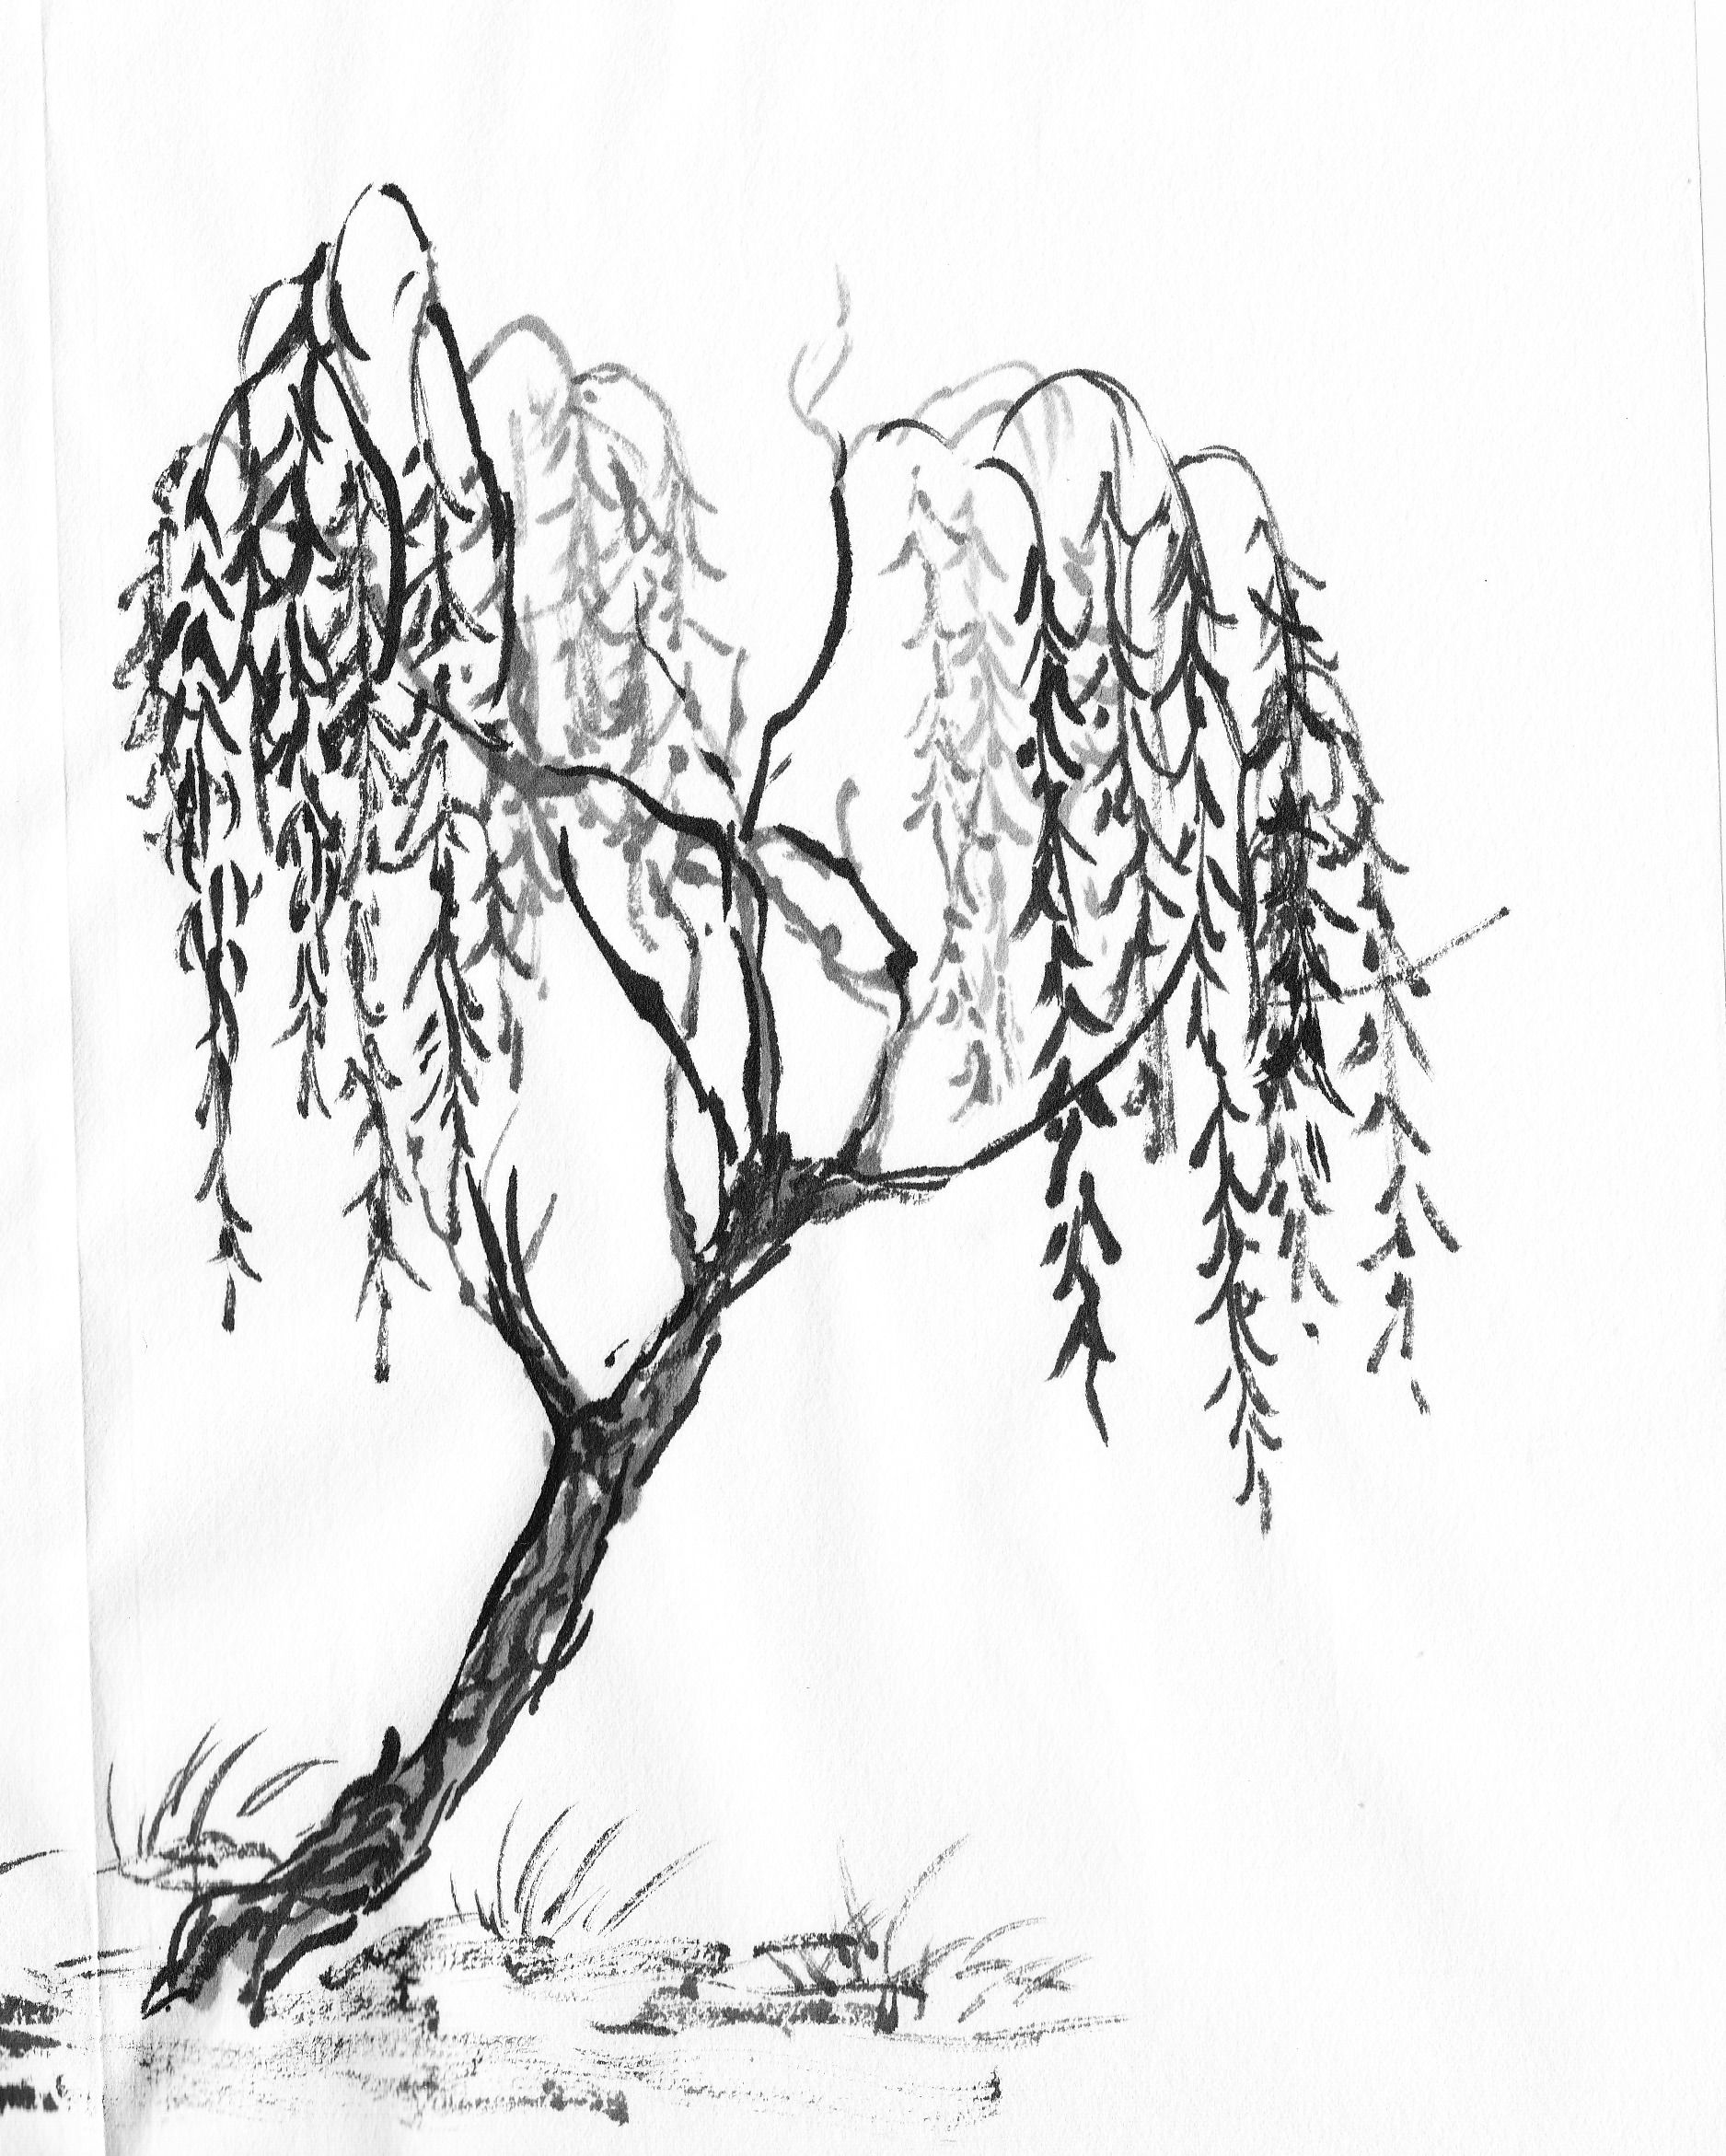 Coloring Page Willow Tree. Willow Tree Branches Drawing Sketch Coloring Page Specific trees  painting tree Tattoo and Tatting